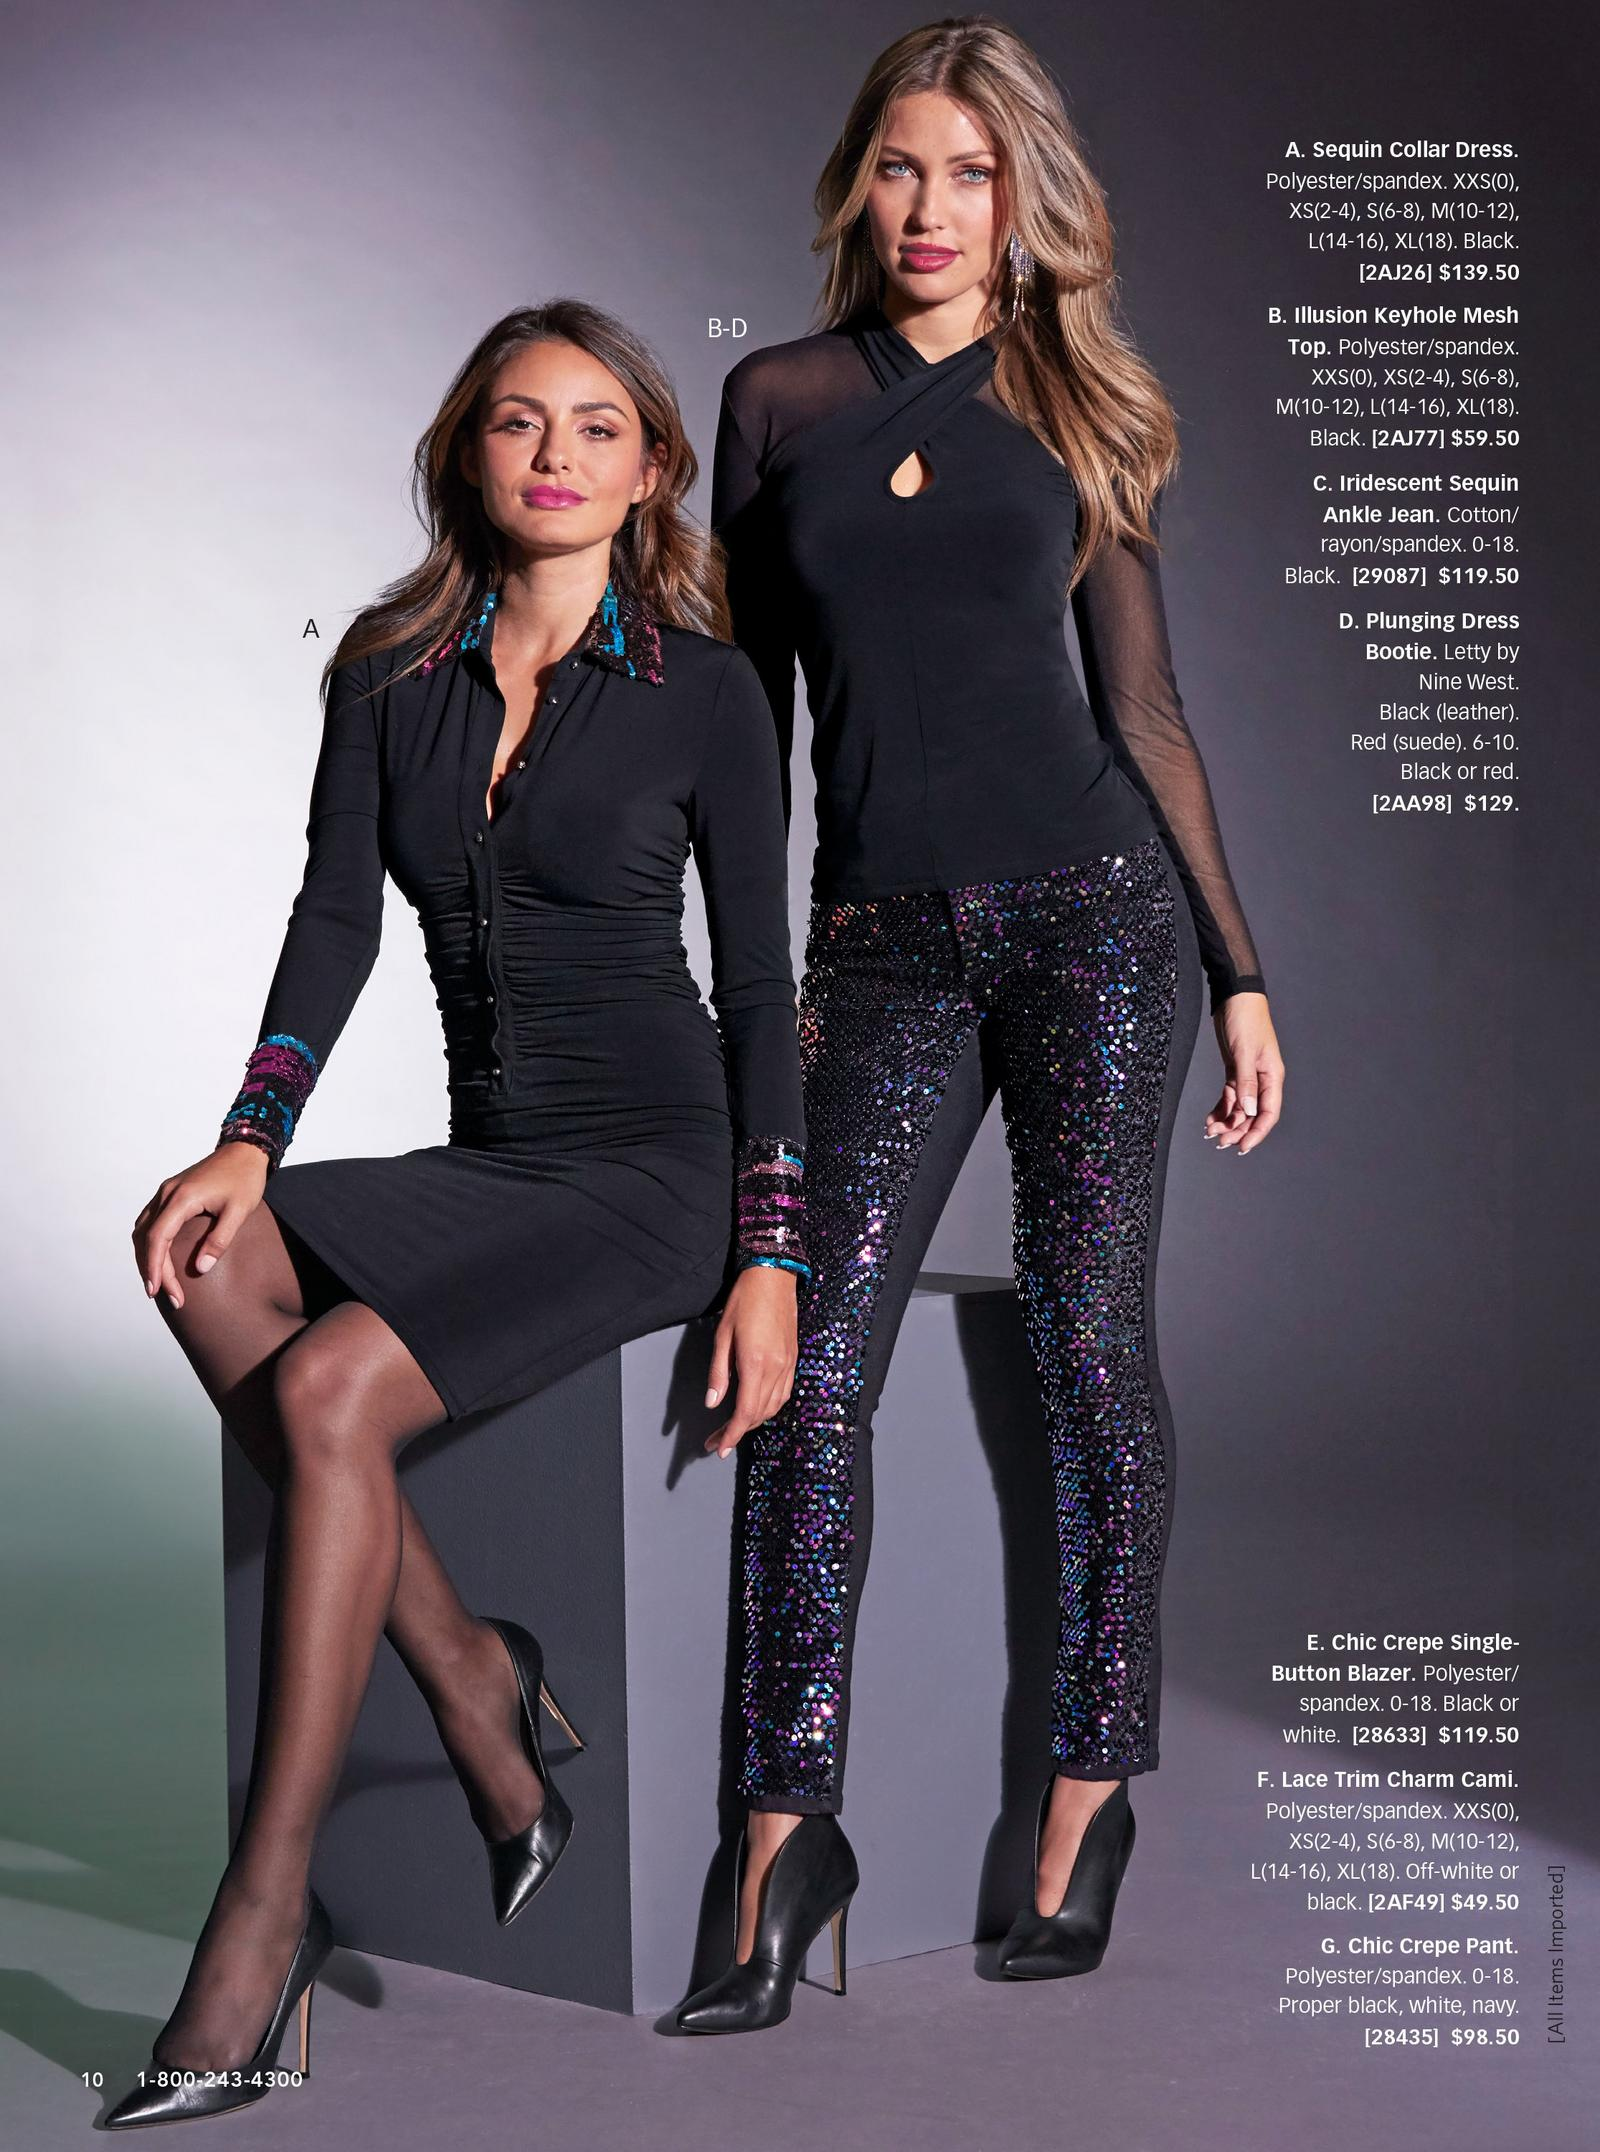 left: sequin collar and cuff black ruched dress. right: illusion keyhole mesh top in black and iridescent sequin ankle jean in black